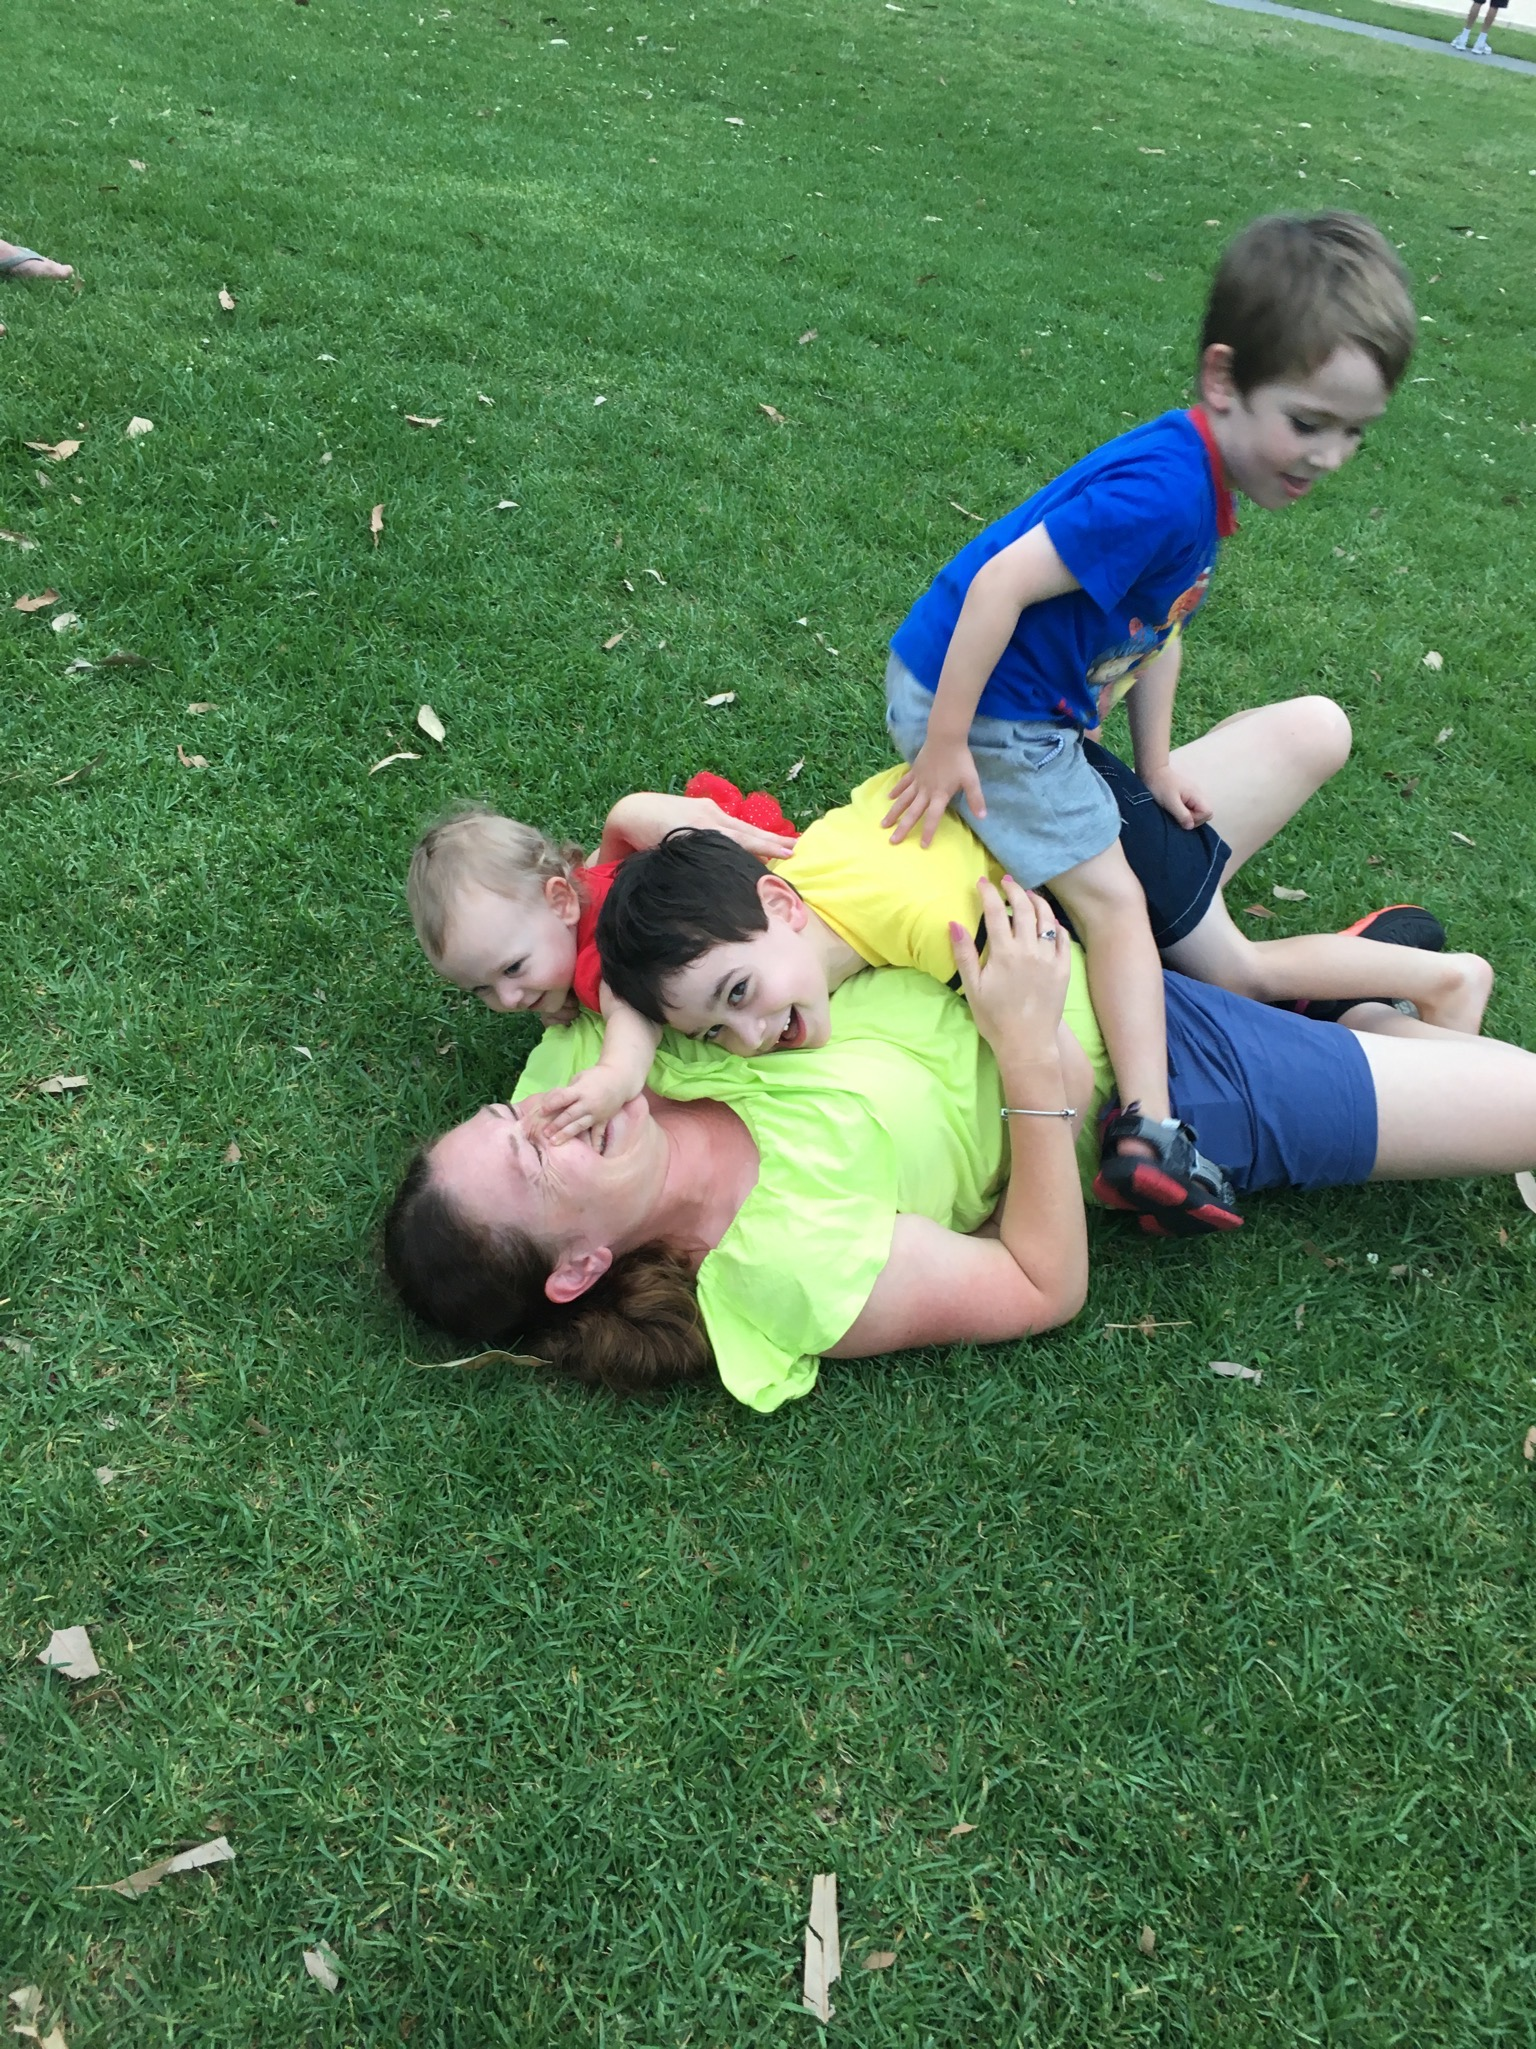 This is me, Melanie Cunningham playing with my 3 kids.